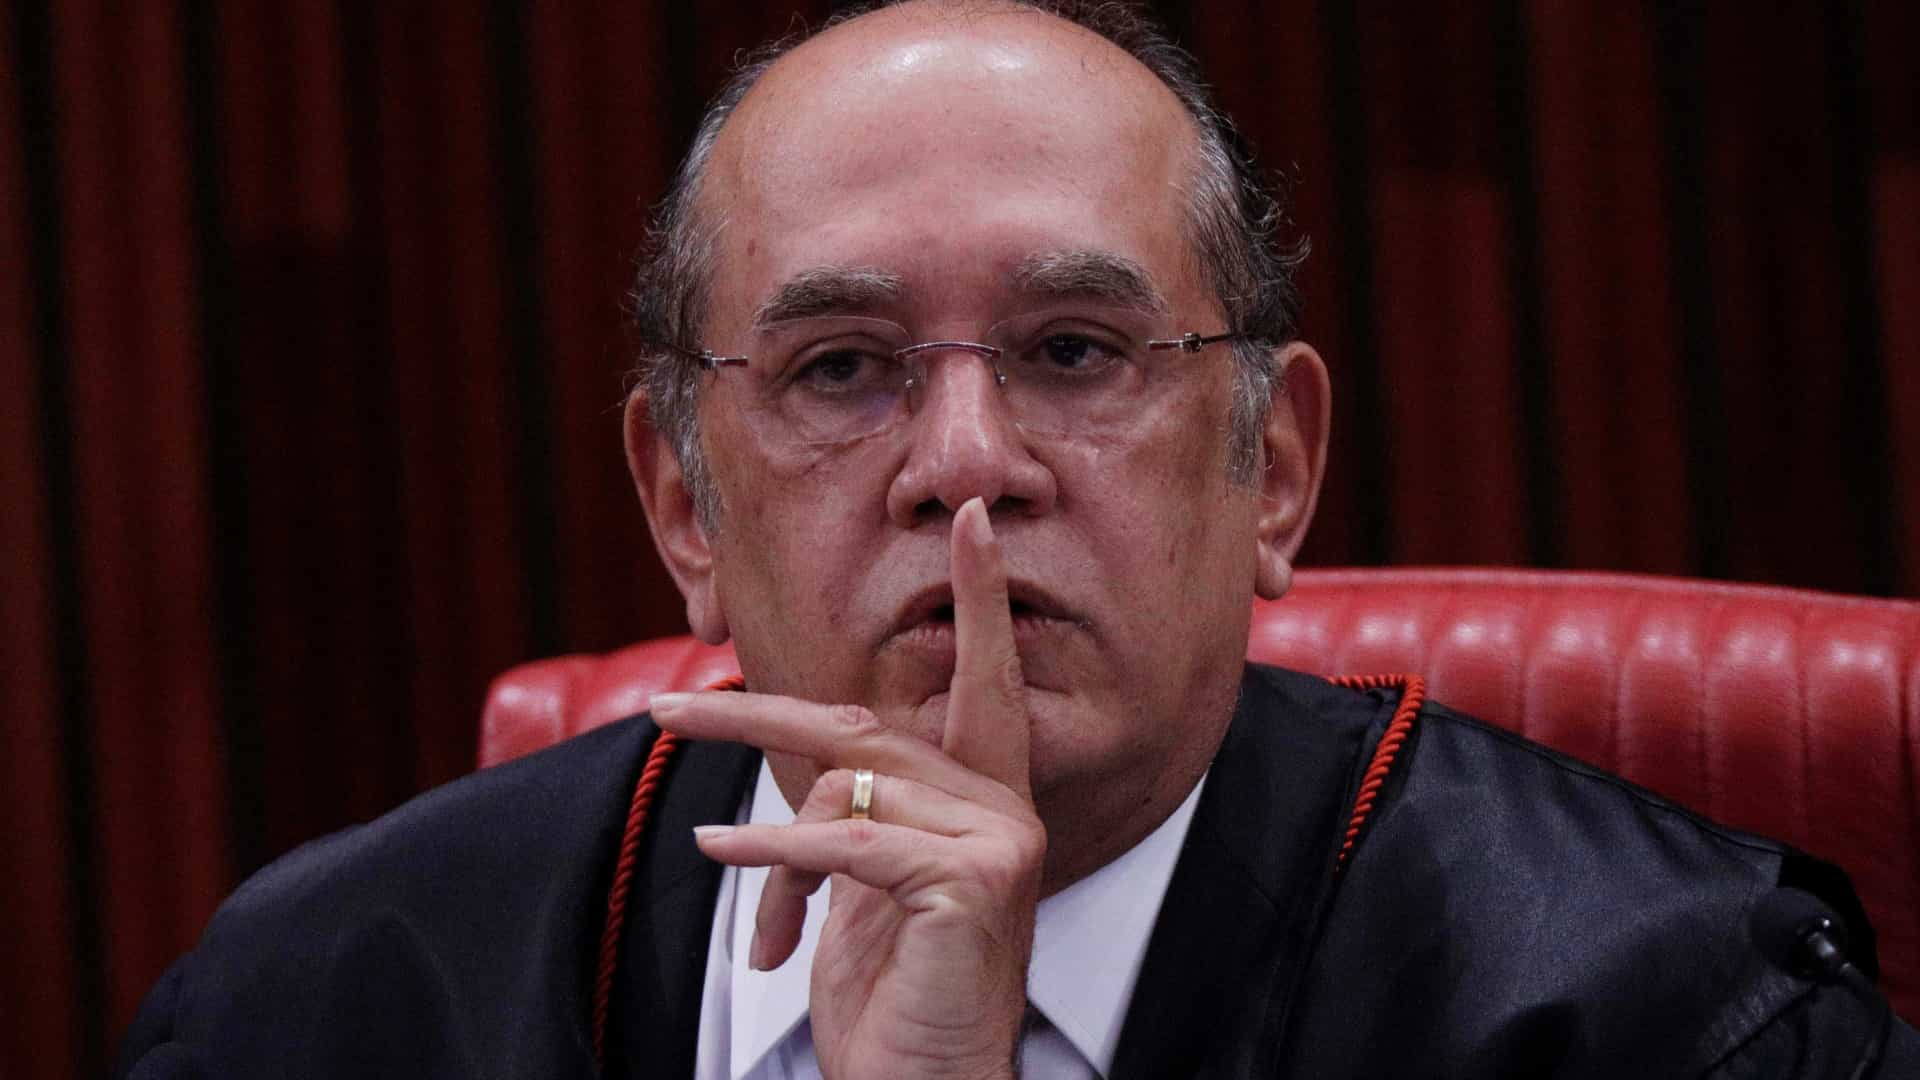 Inquérito de fake news é 'absolutamente regular', diz Gilmar Mendes